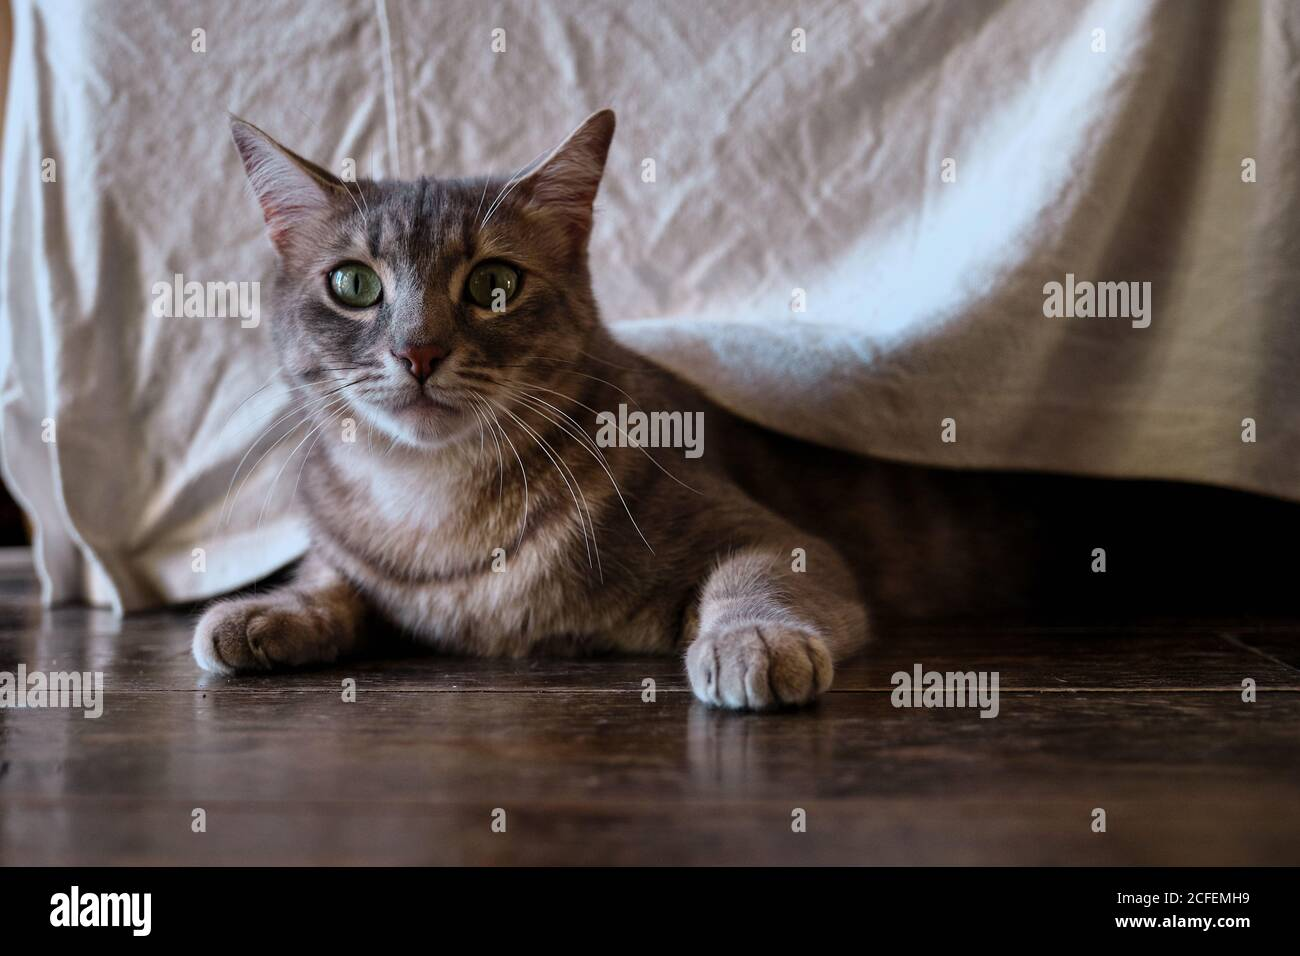 Cute gray cat with mackerel stripes in hunting and playing mood with body low to wooden floor under furniture at home Stock Photo